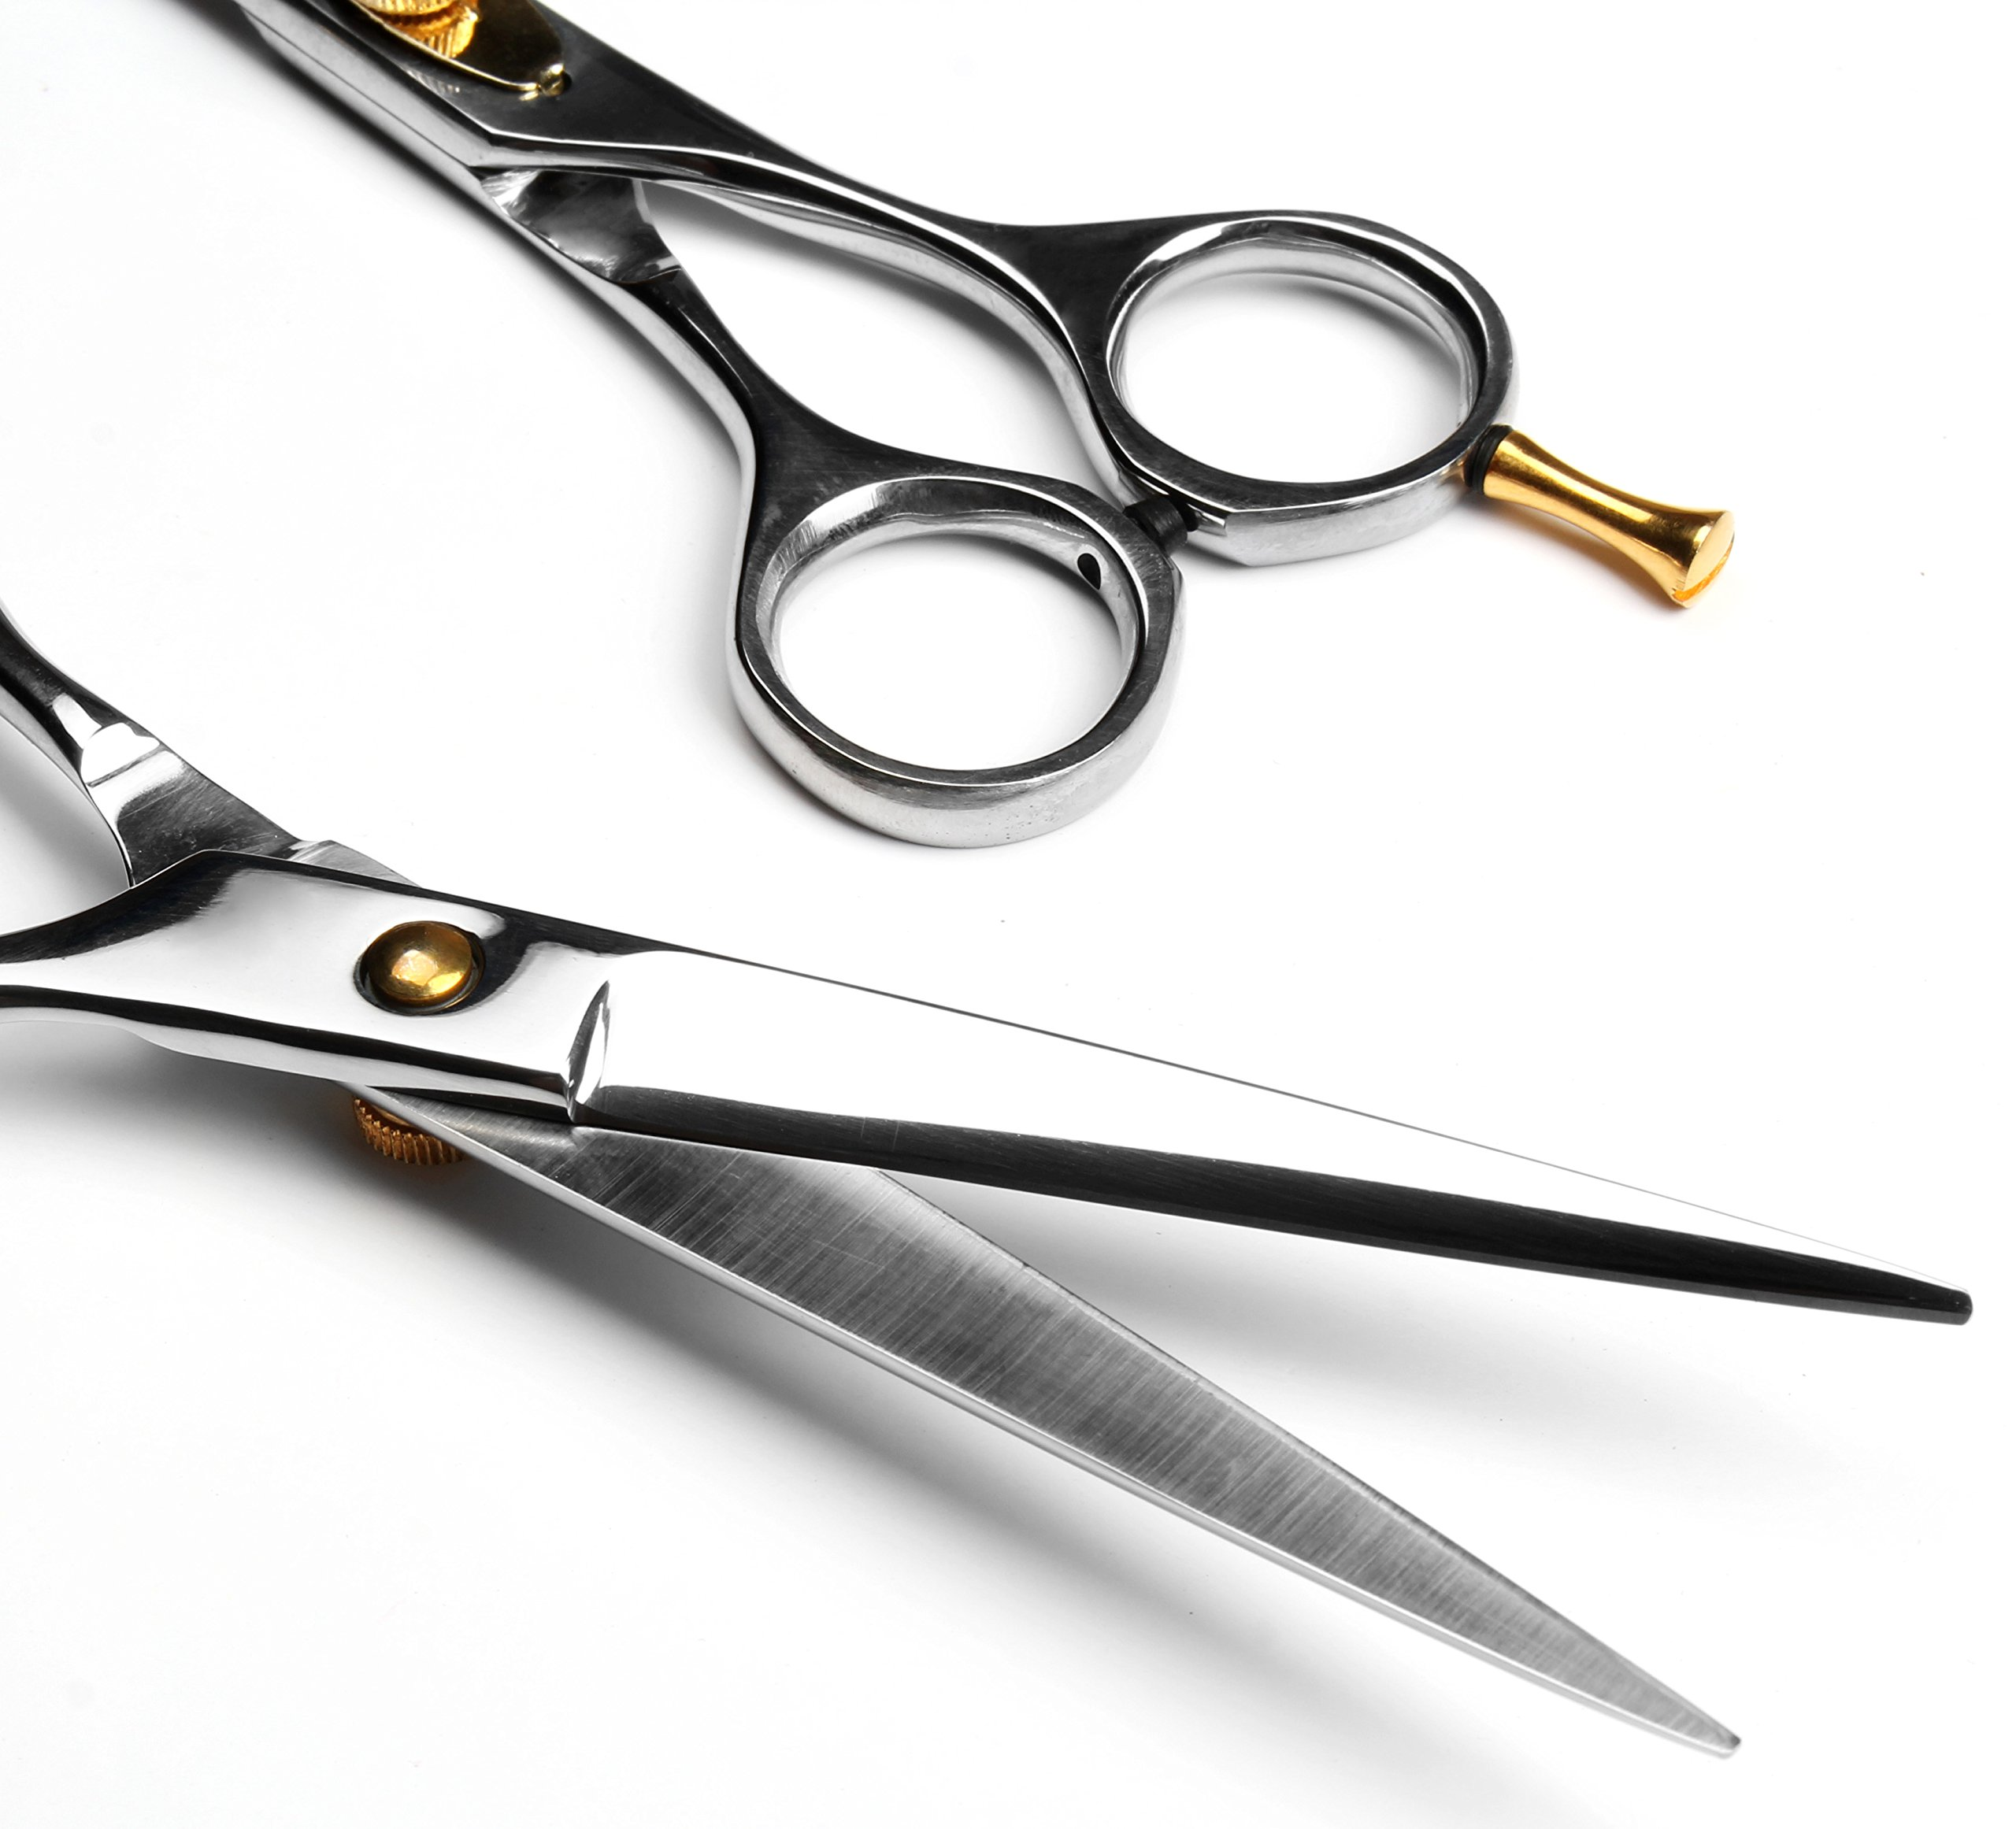 Professional Barber Scissor 6.5 Inch Razor Edge Blade Rust Free Stainless Steel Chrome Plated Shears For Smooth Cutting - Easy Grip Hairdressing Cosmetic Scissors by MB (Image #3)